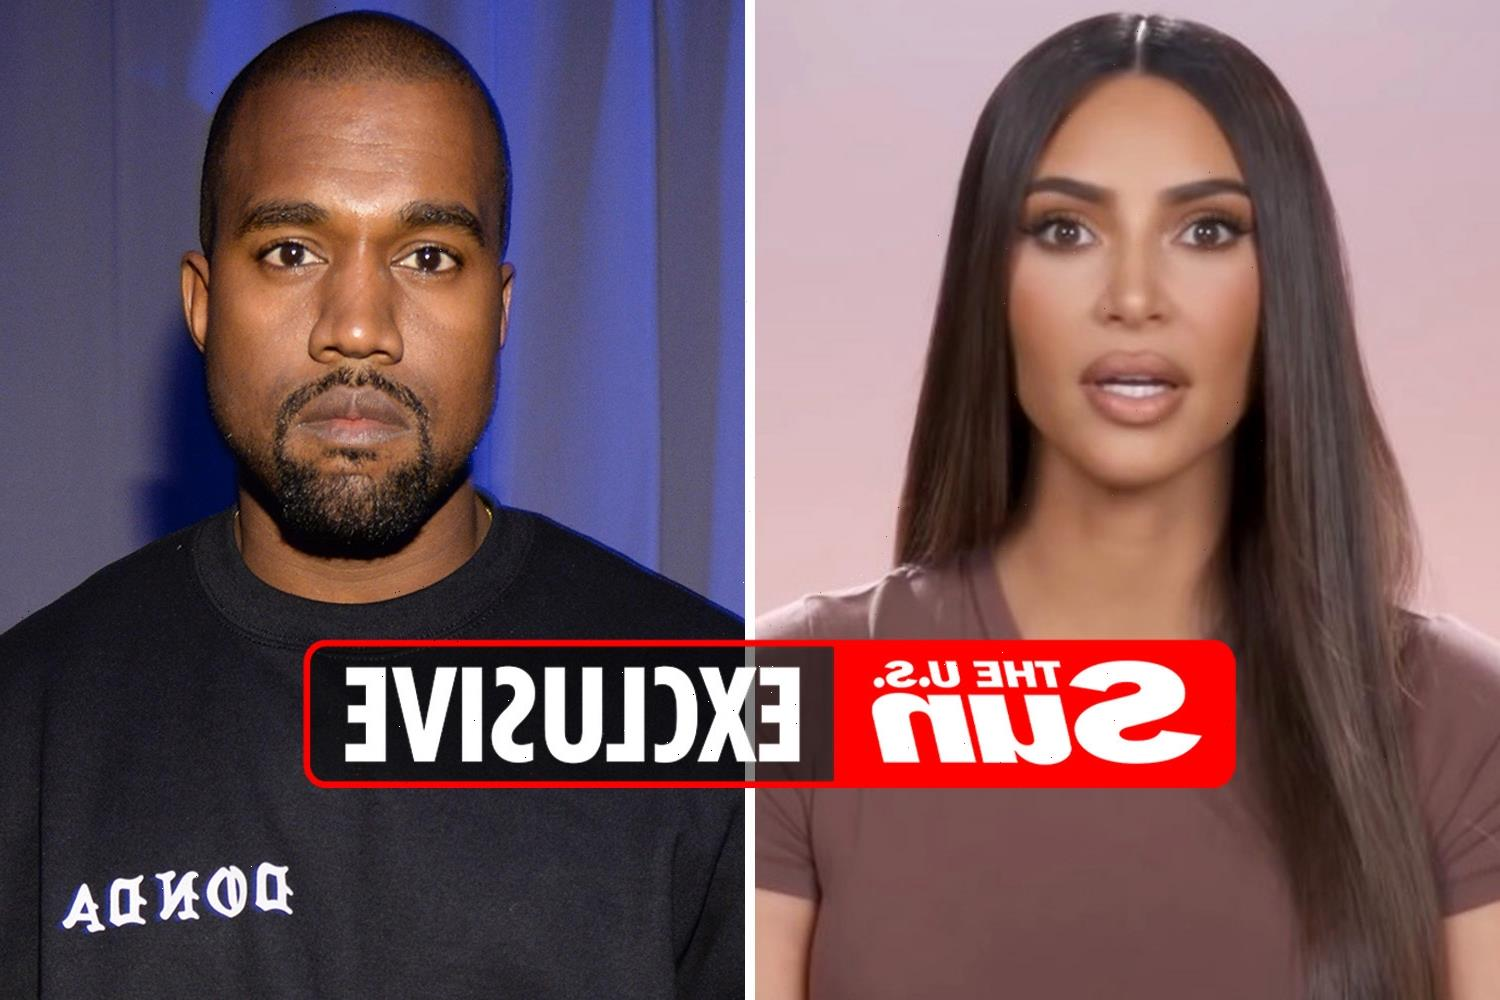 Kim Kardashian 'begged' Kanye West to remove cheating confession on Donda and is 'fuming' he 'humiliated' their family